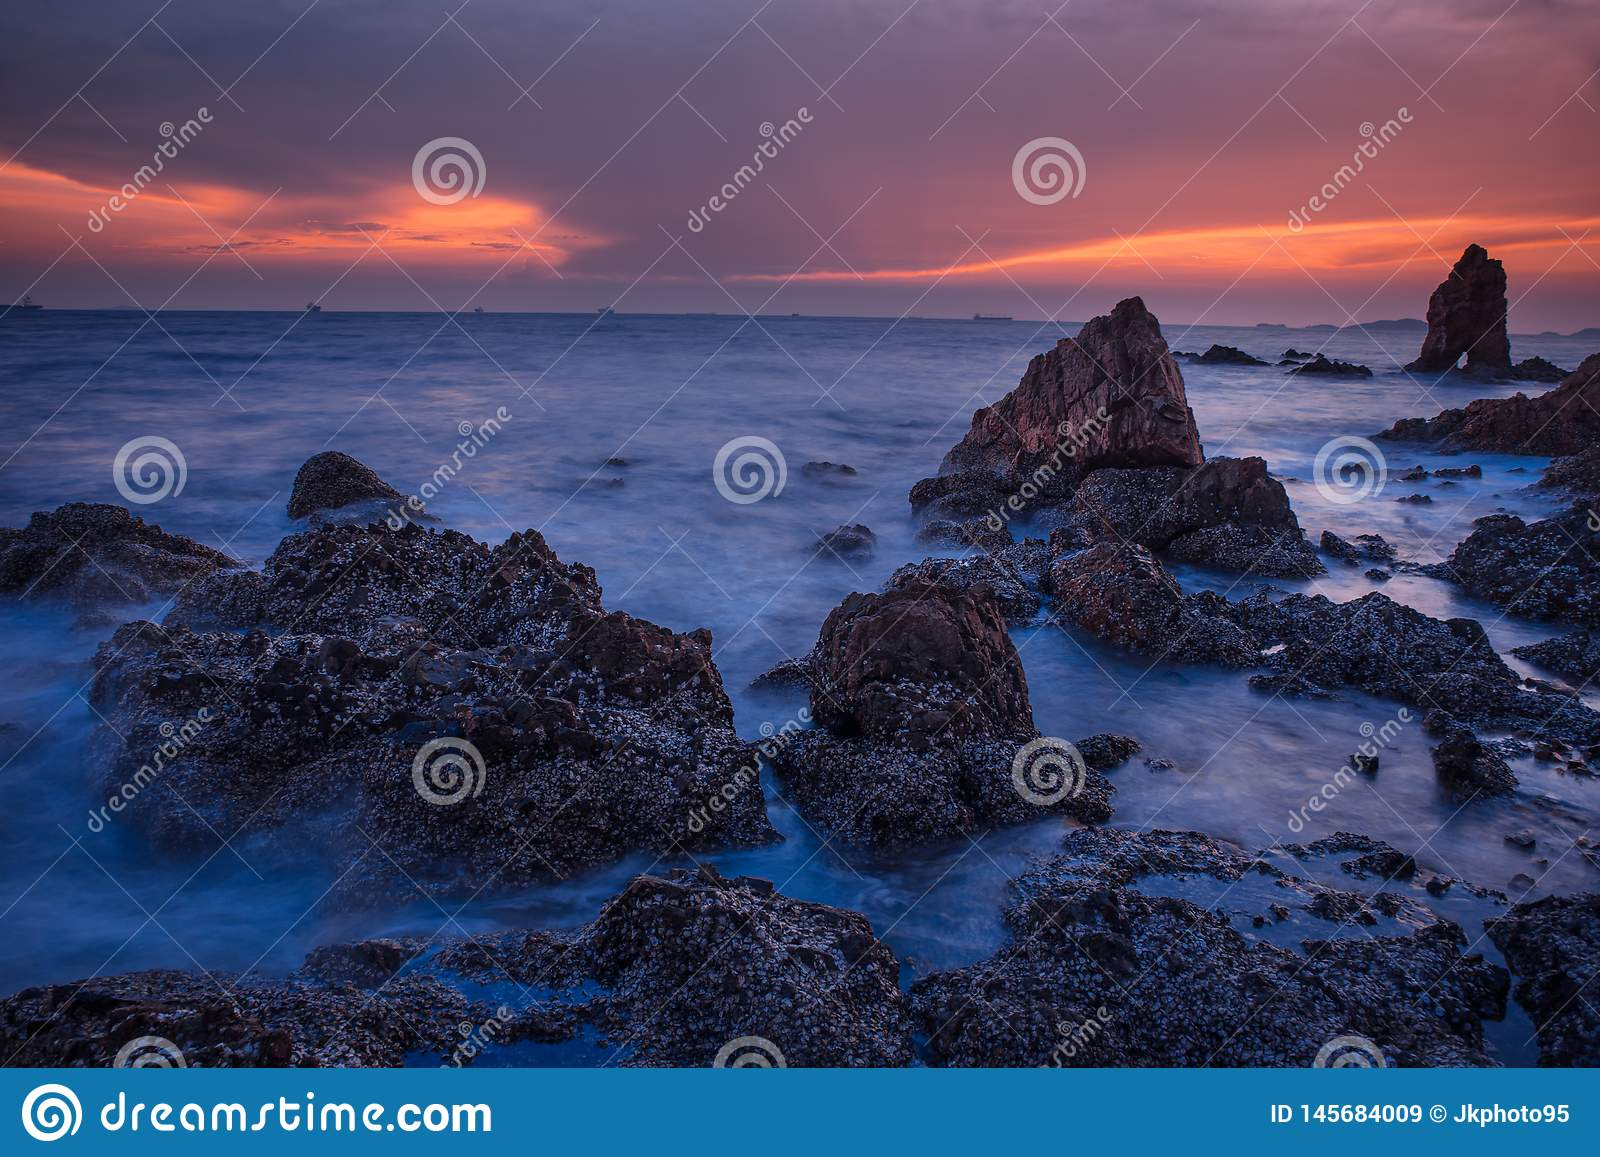 Evening sea on Gray and Orange sky background